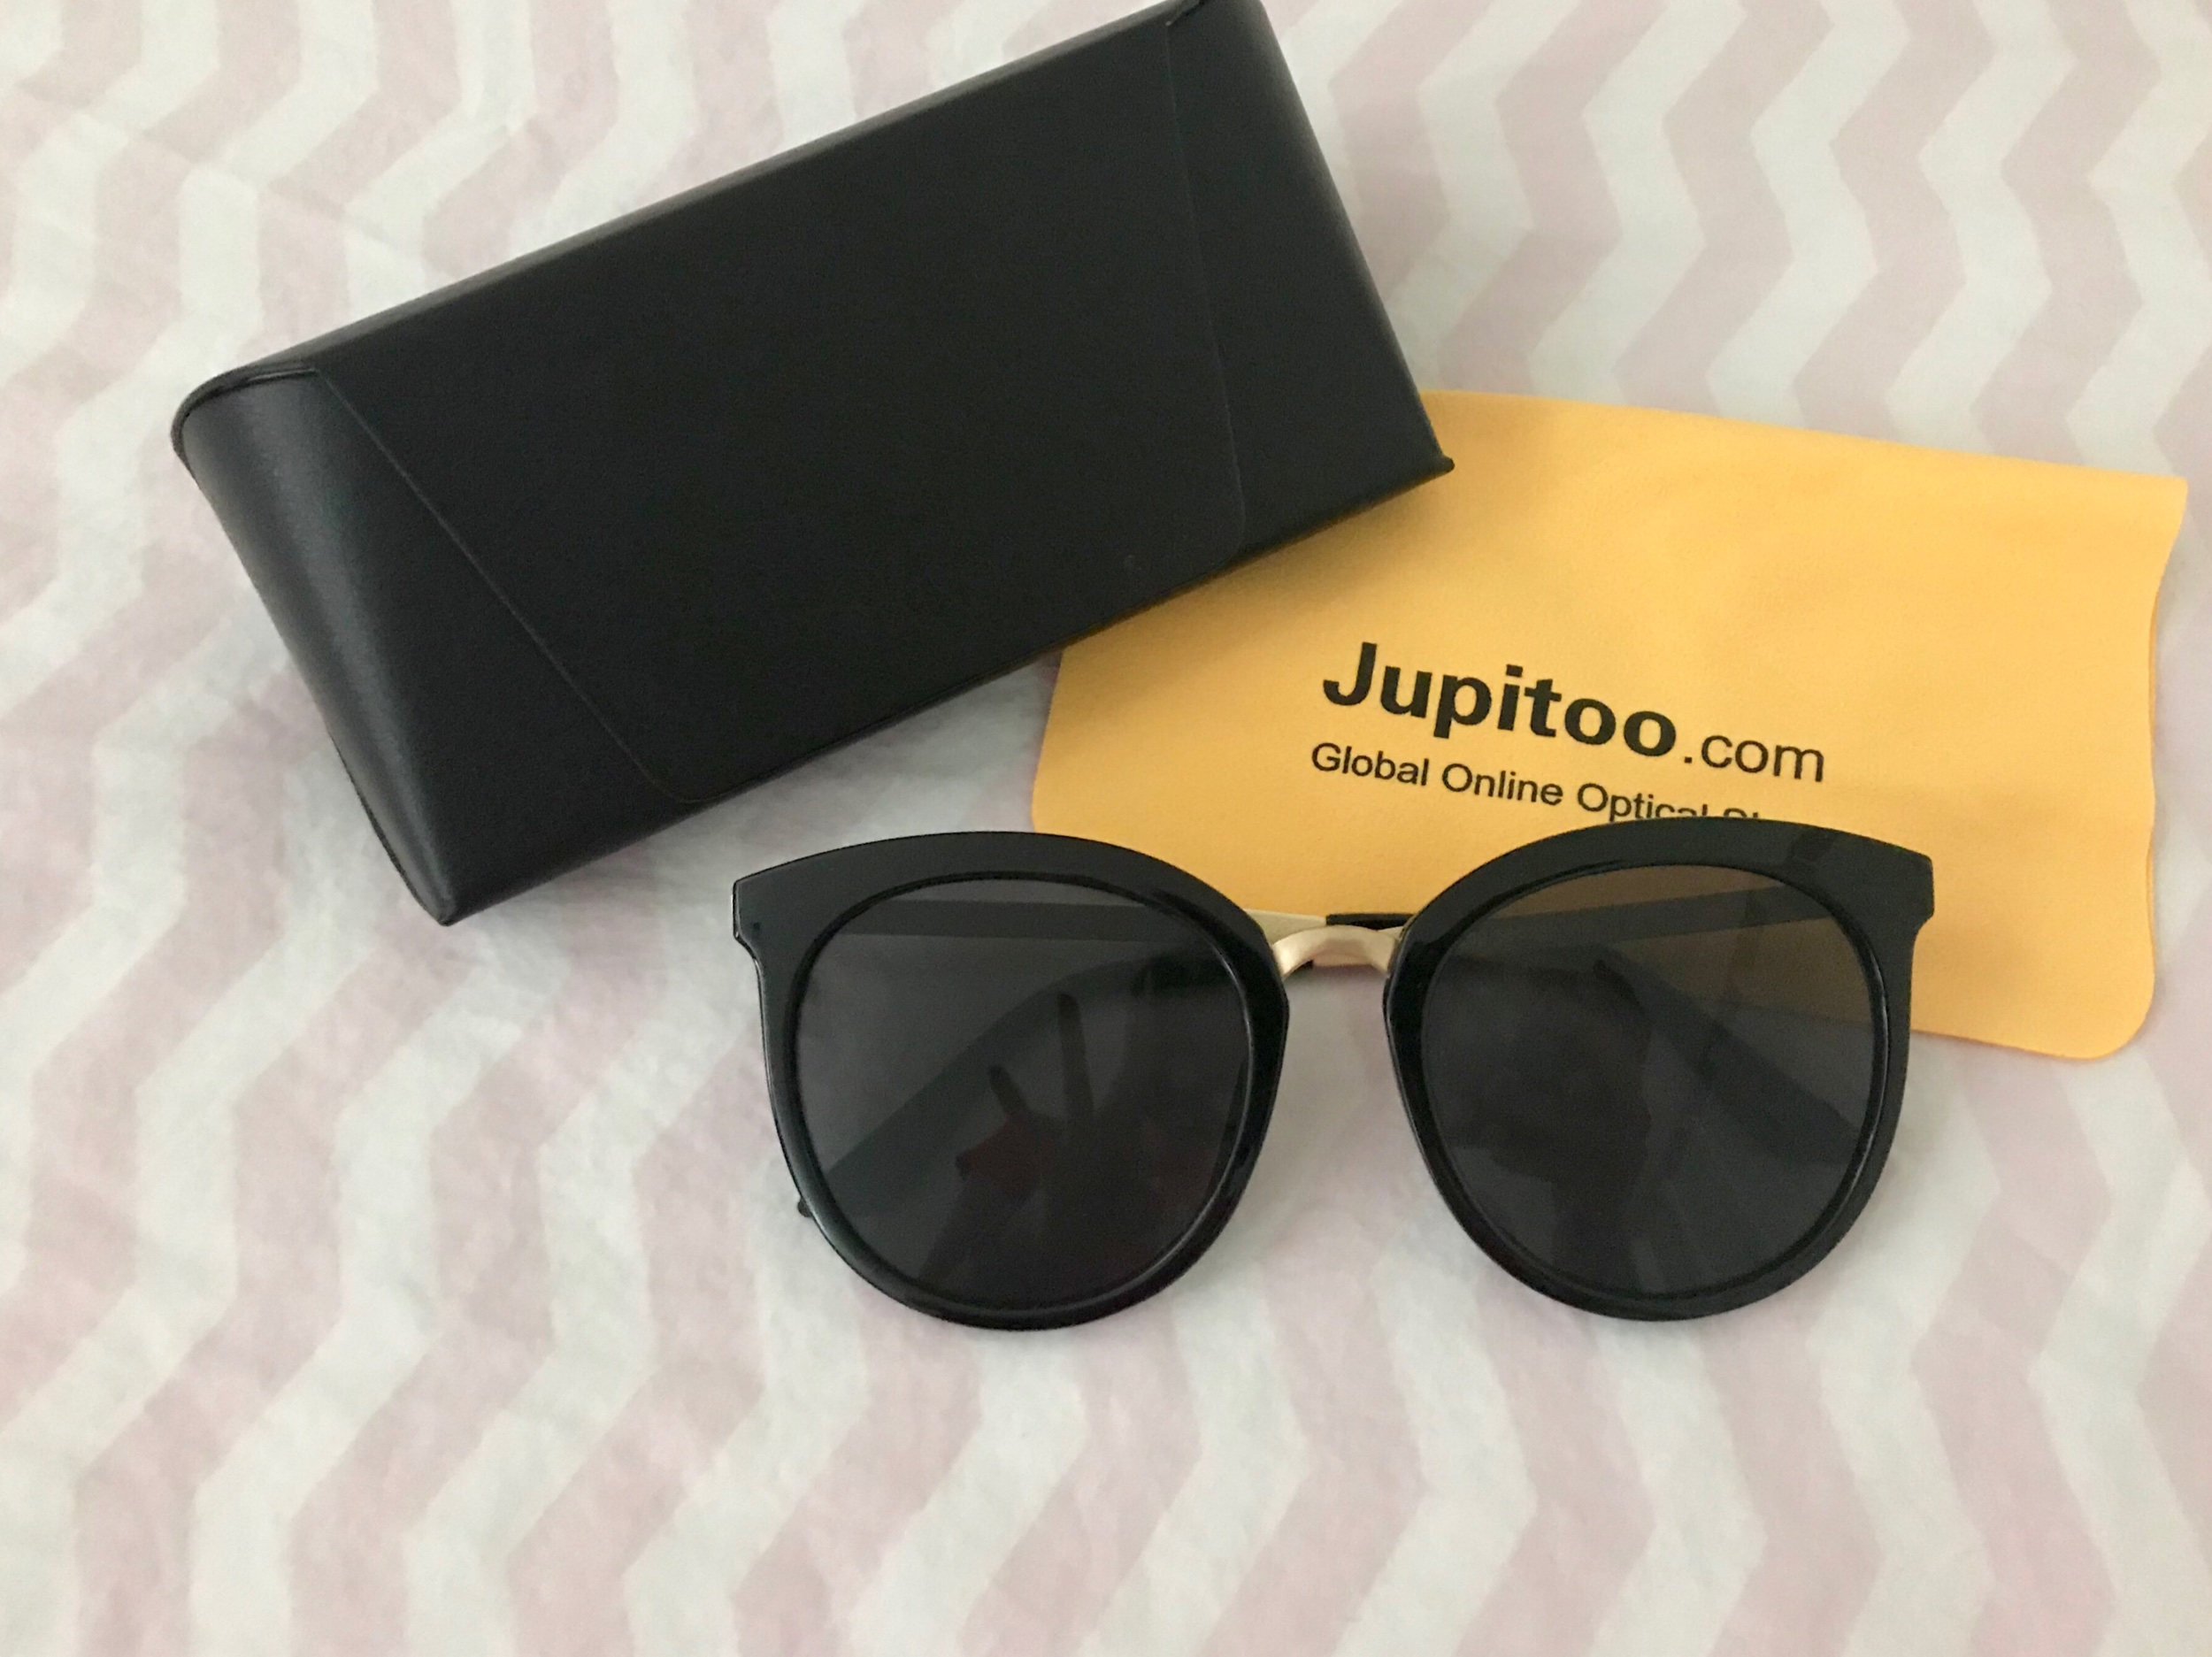 Review: Jupitoo